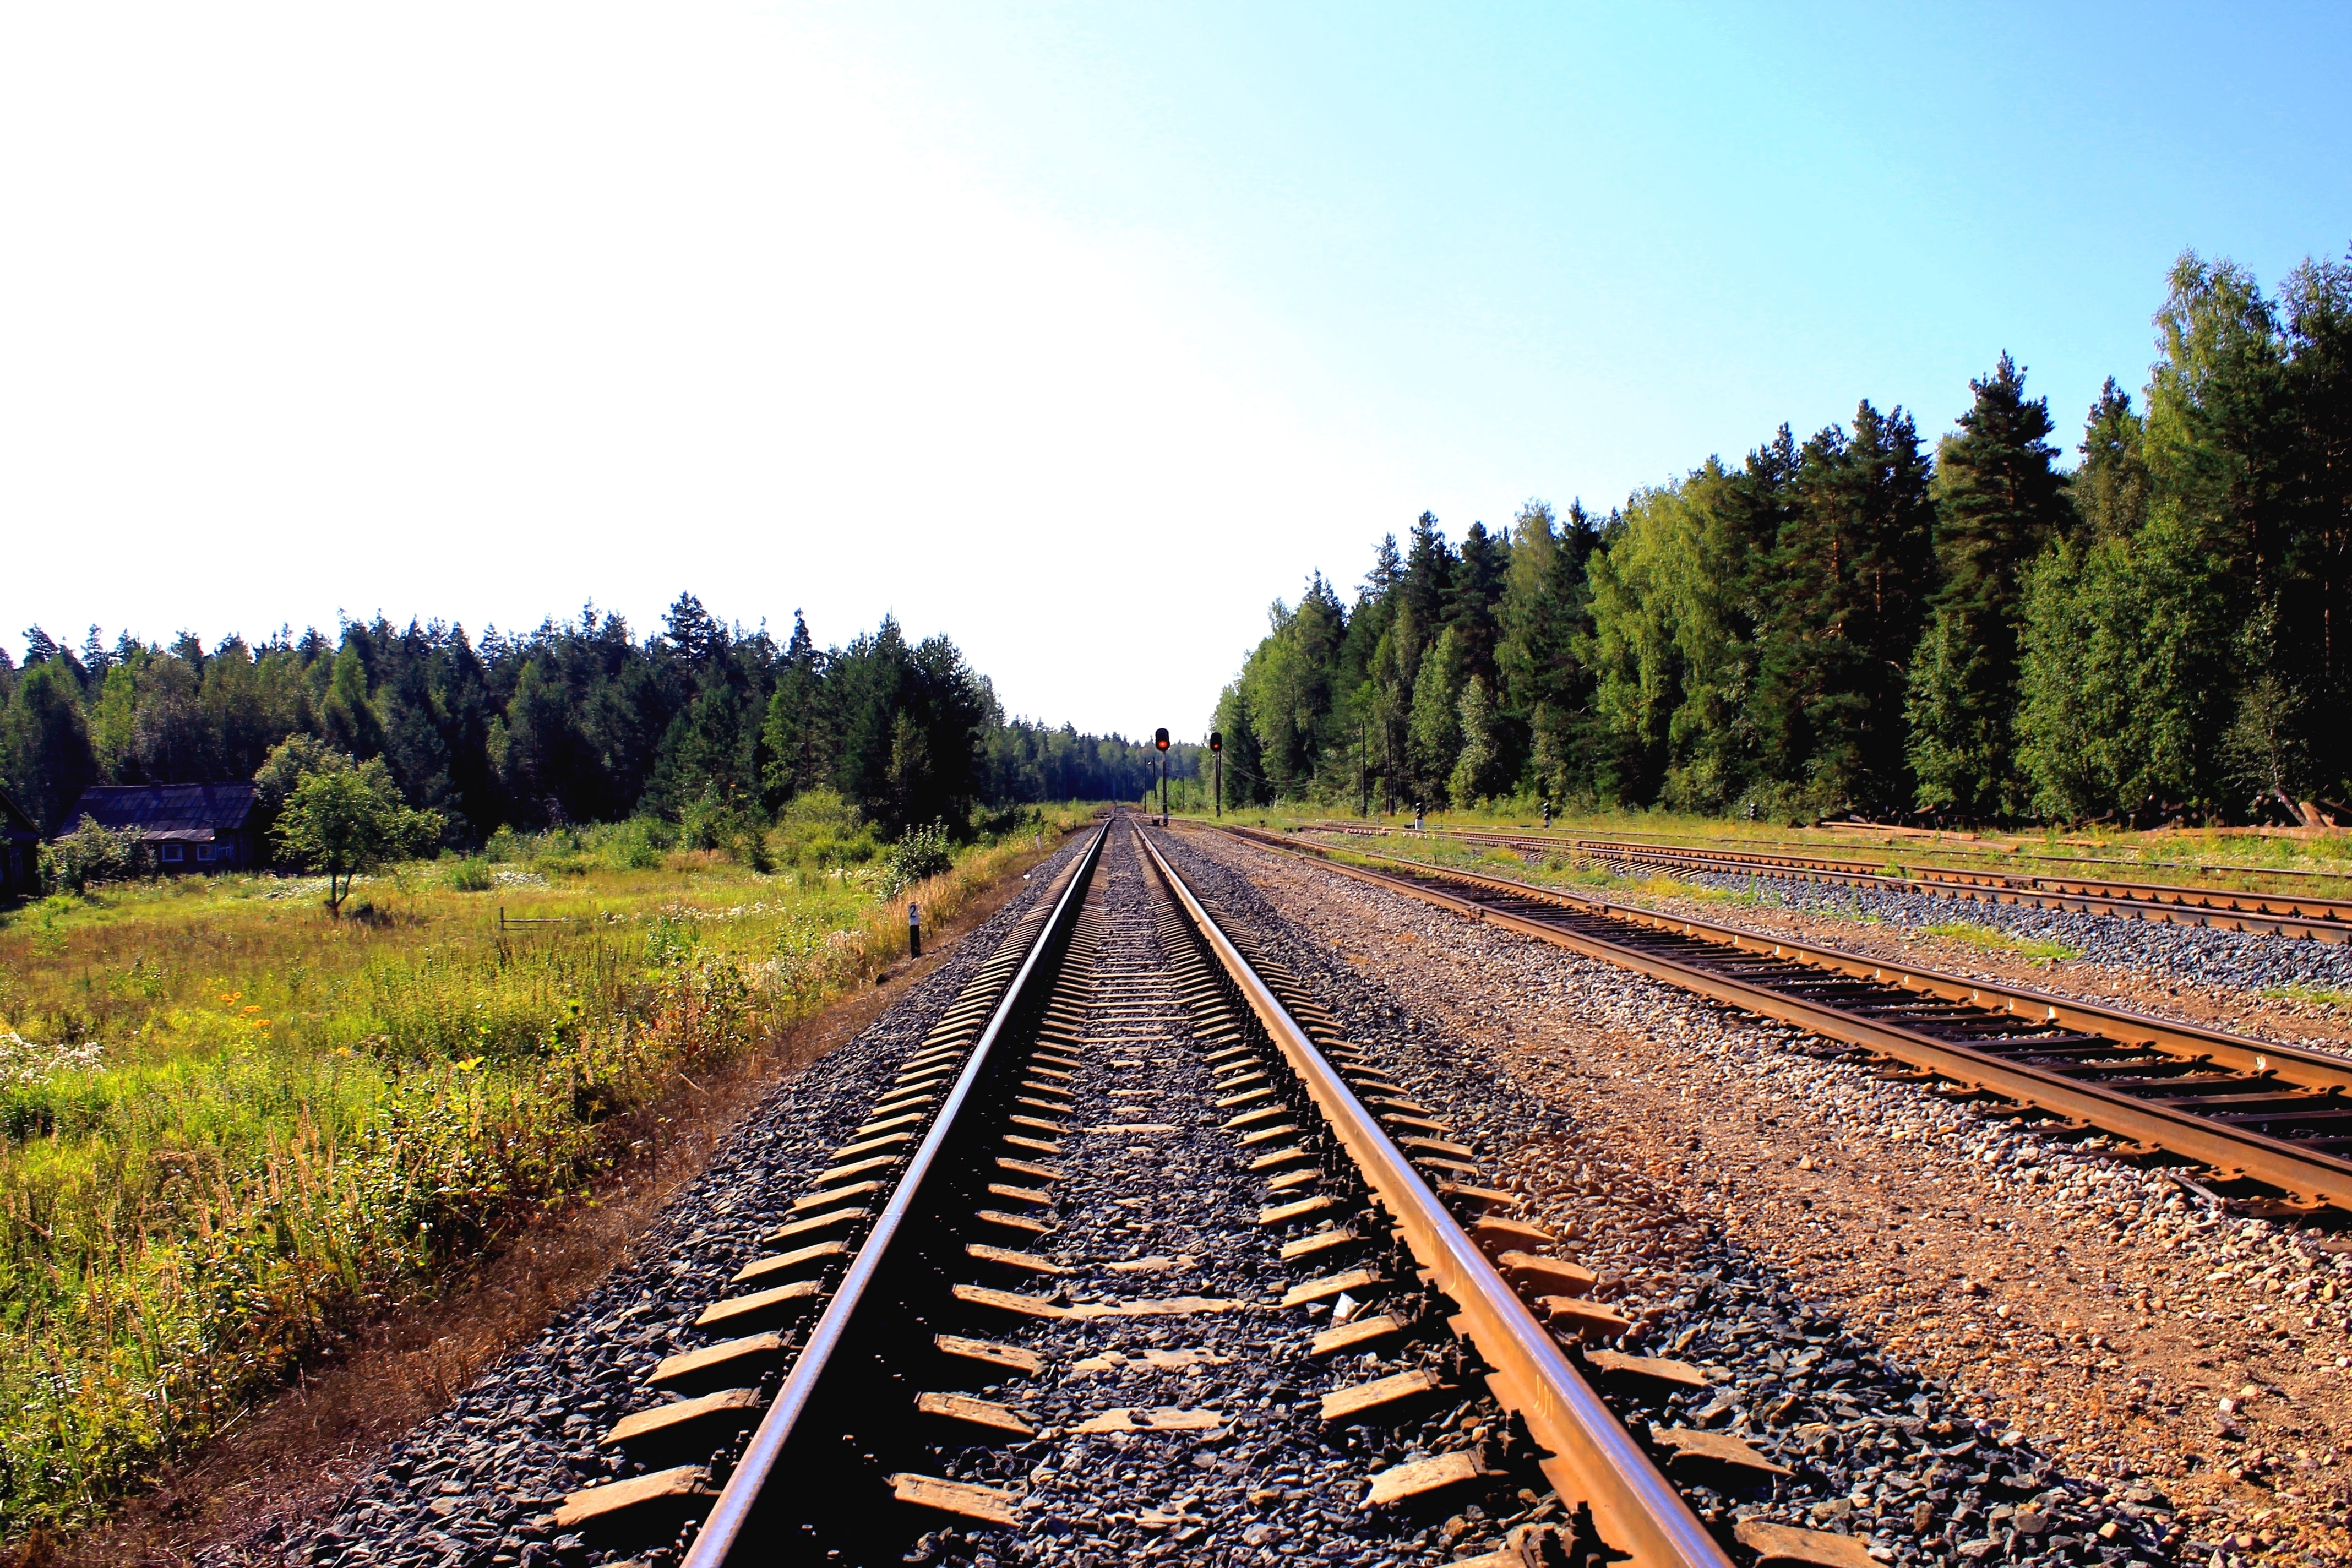 Empty train tracks lined with lush green trees